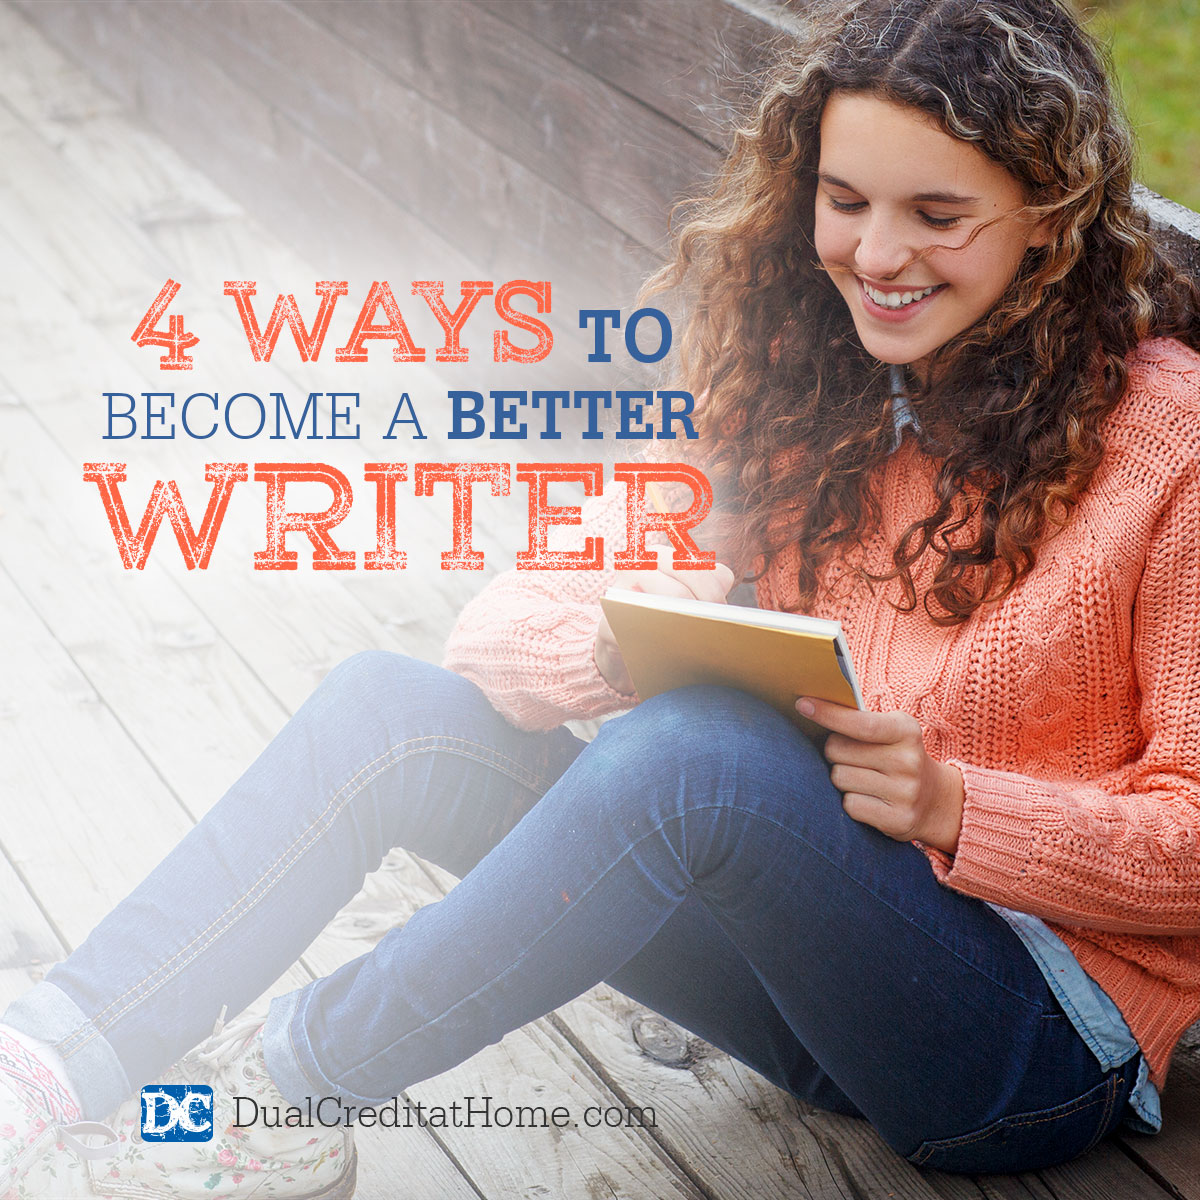 Four Ways to Become a Better Writer